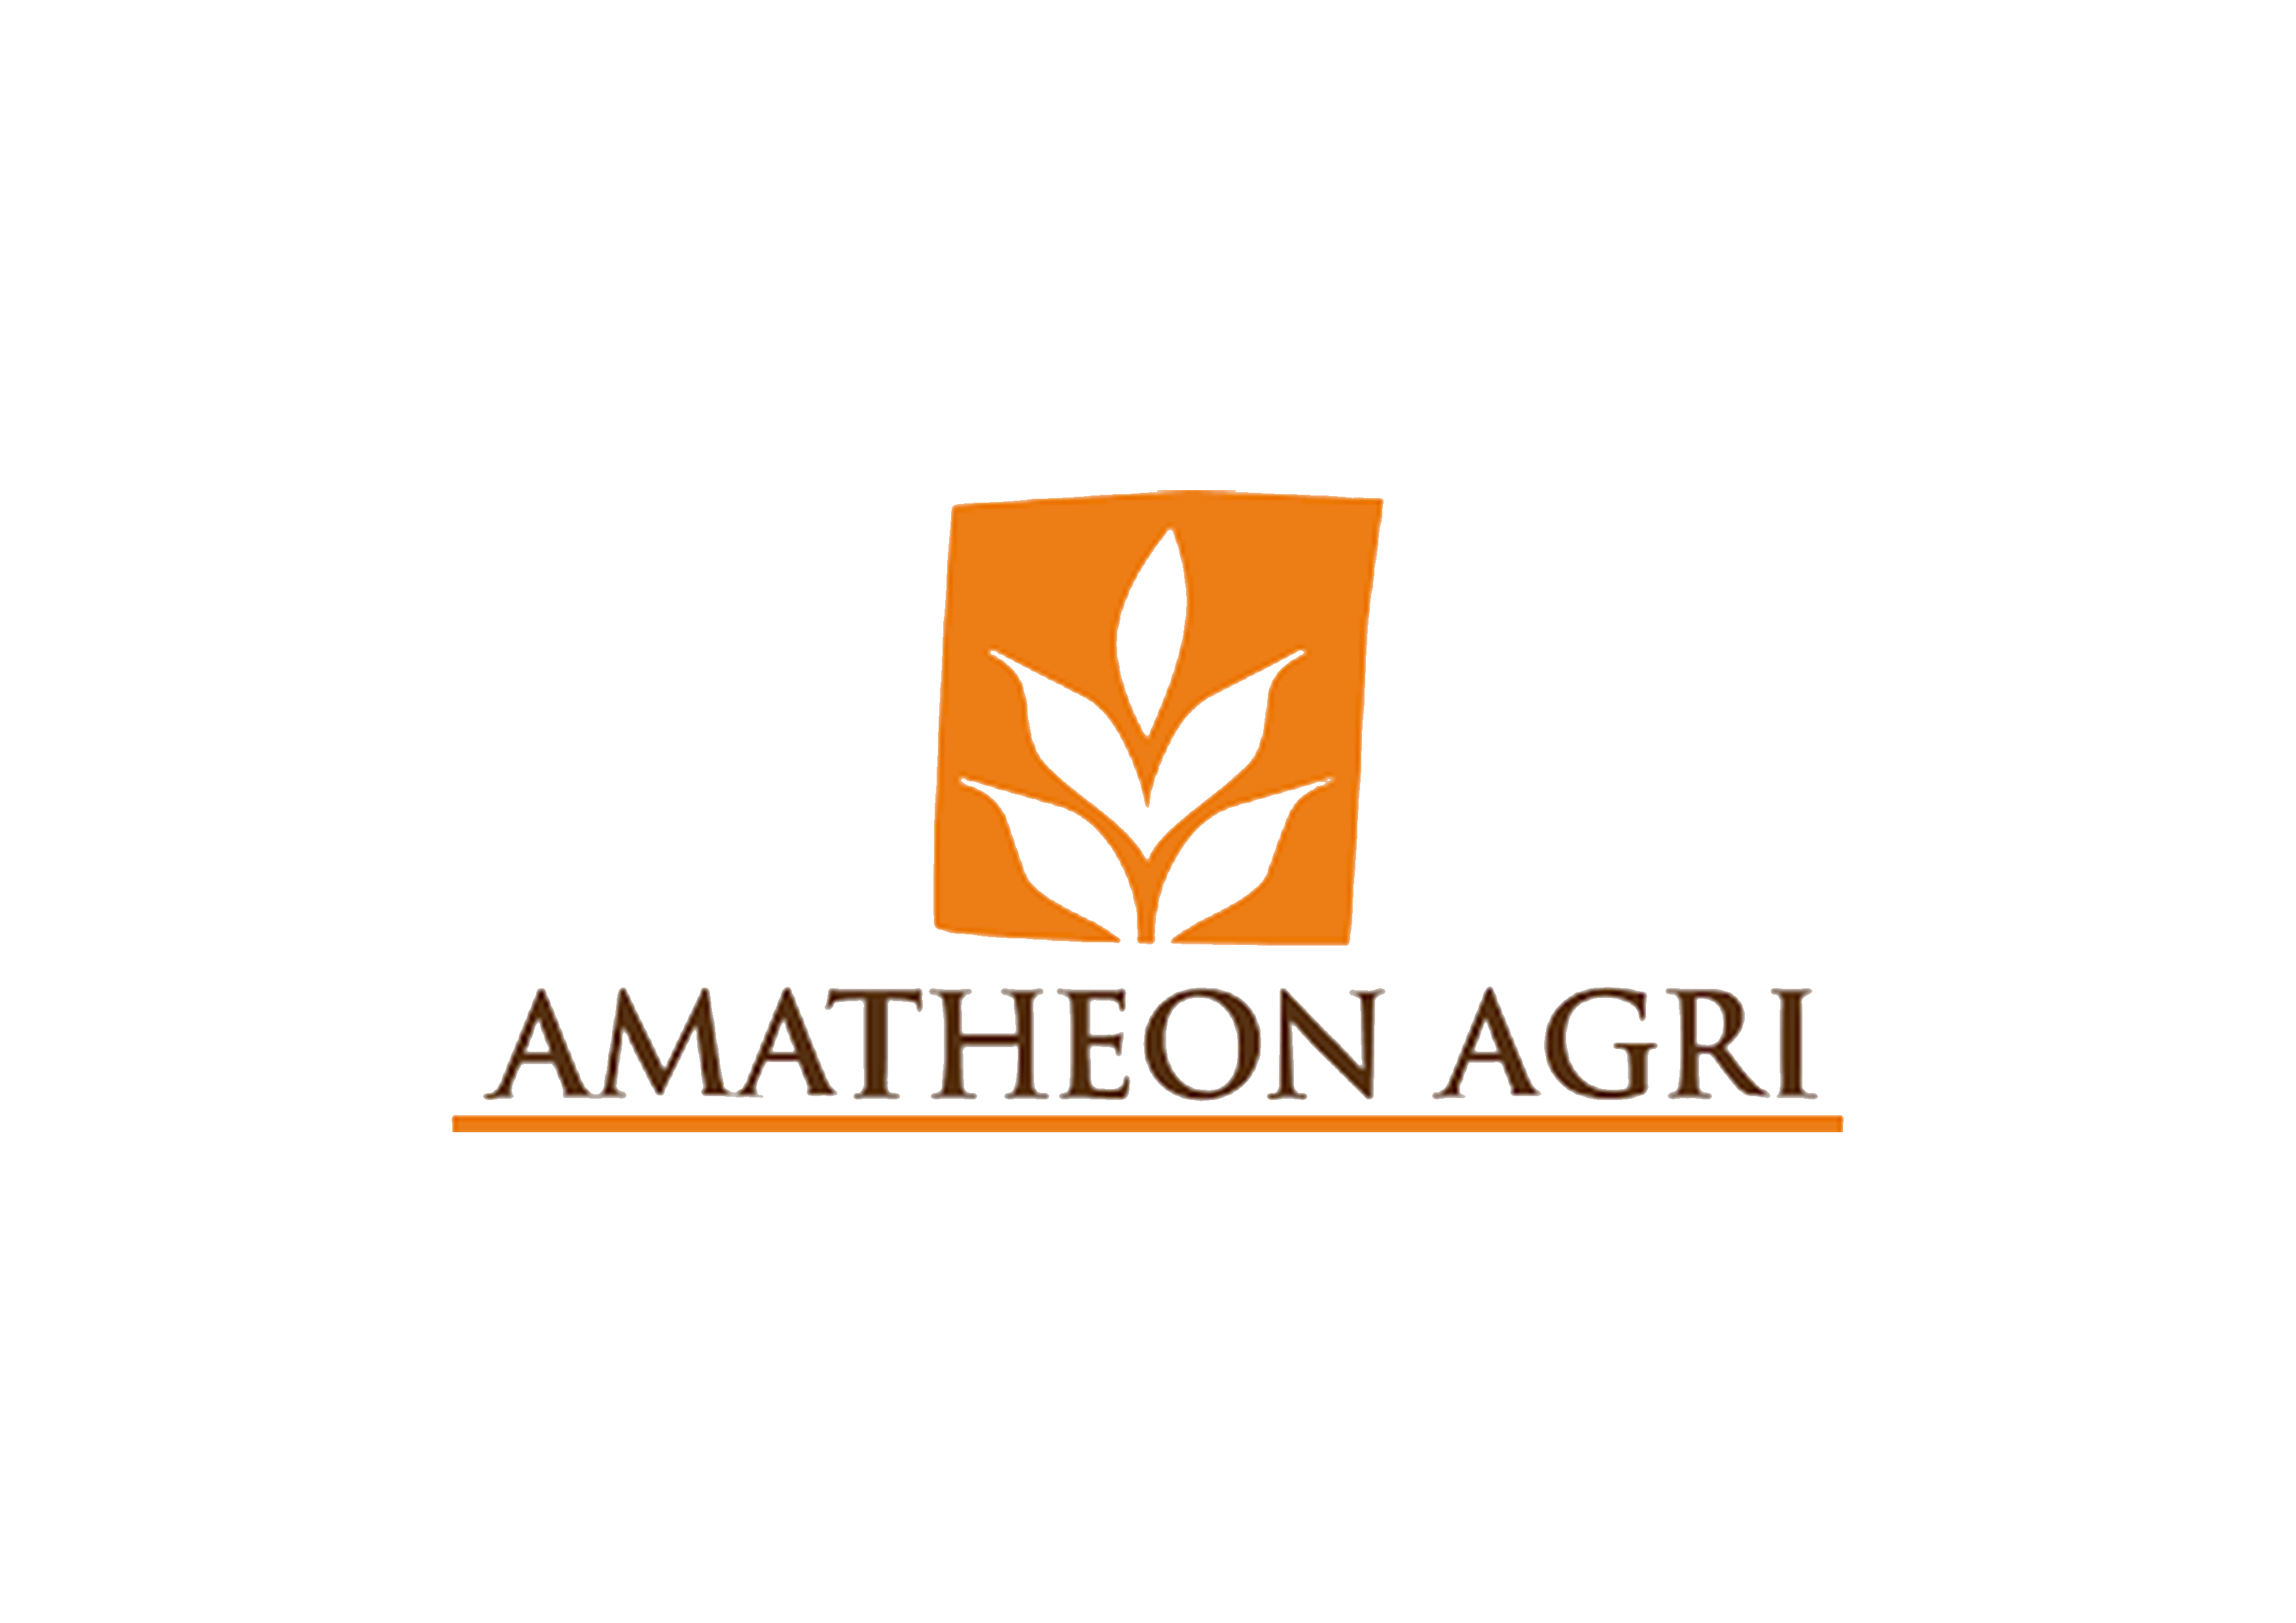 2 Amatheon